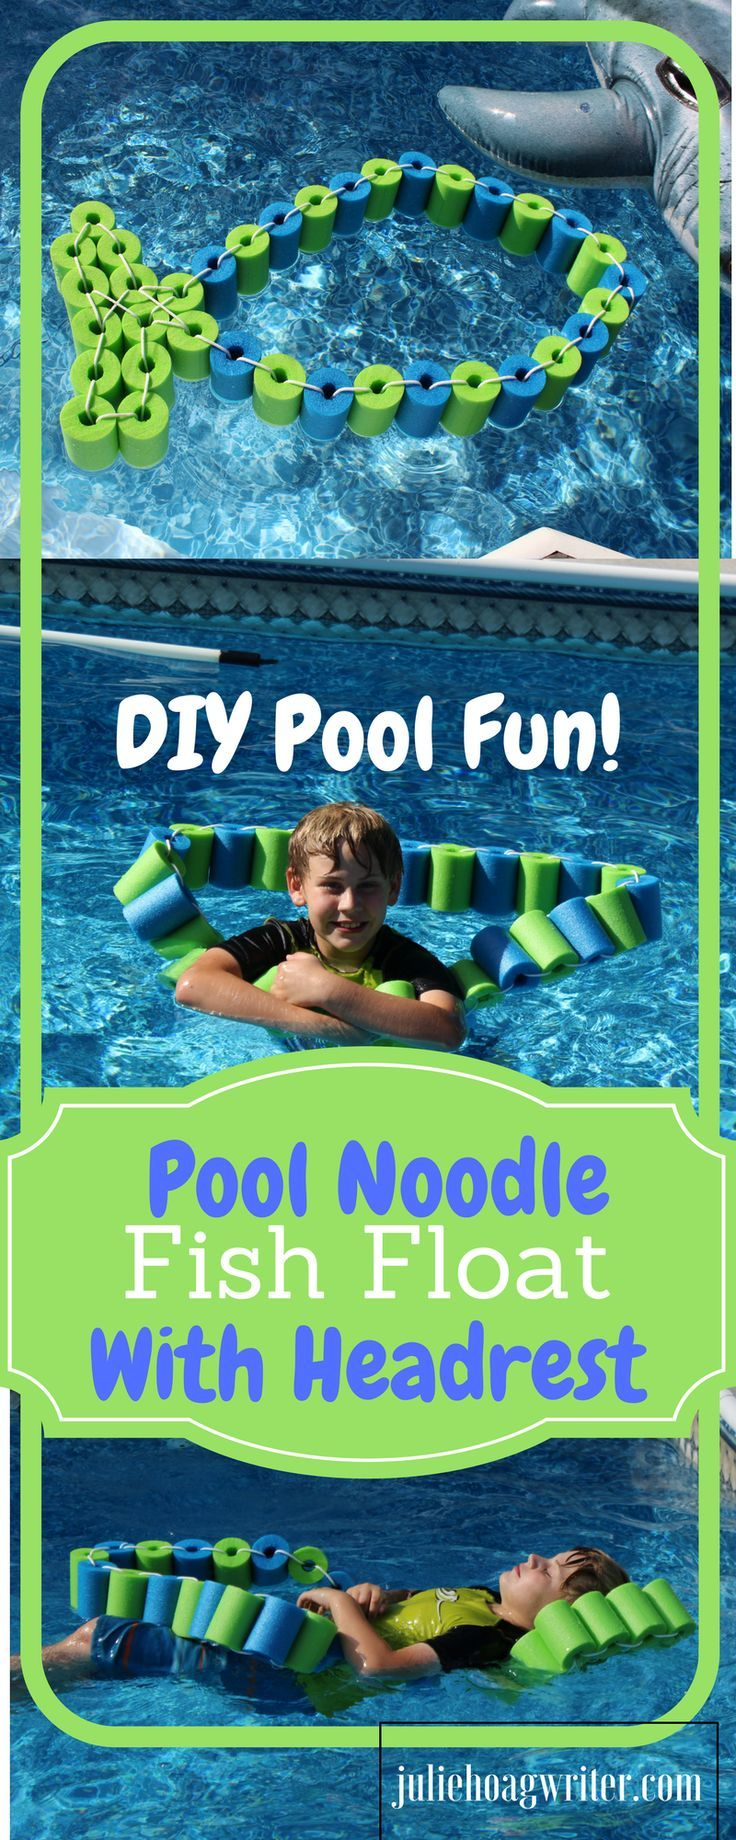 DIY Pool Noodle Fish Float With Headrest. pool-noodle-ideas swimming-pools-inground pool-noodle-crafts. pool-noodles. pool-ideas. pool-toys pool-toys-for-kids pool-floats pool-floats-for-adults. swimming-pools. swimming-pool-ideas. swiming-pool-backyard.